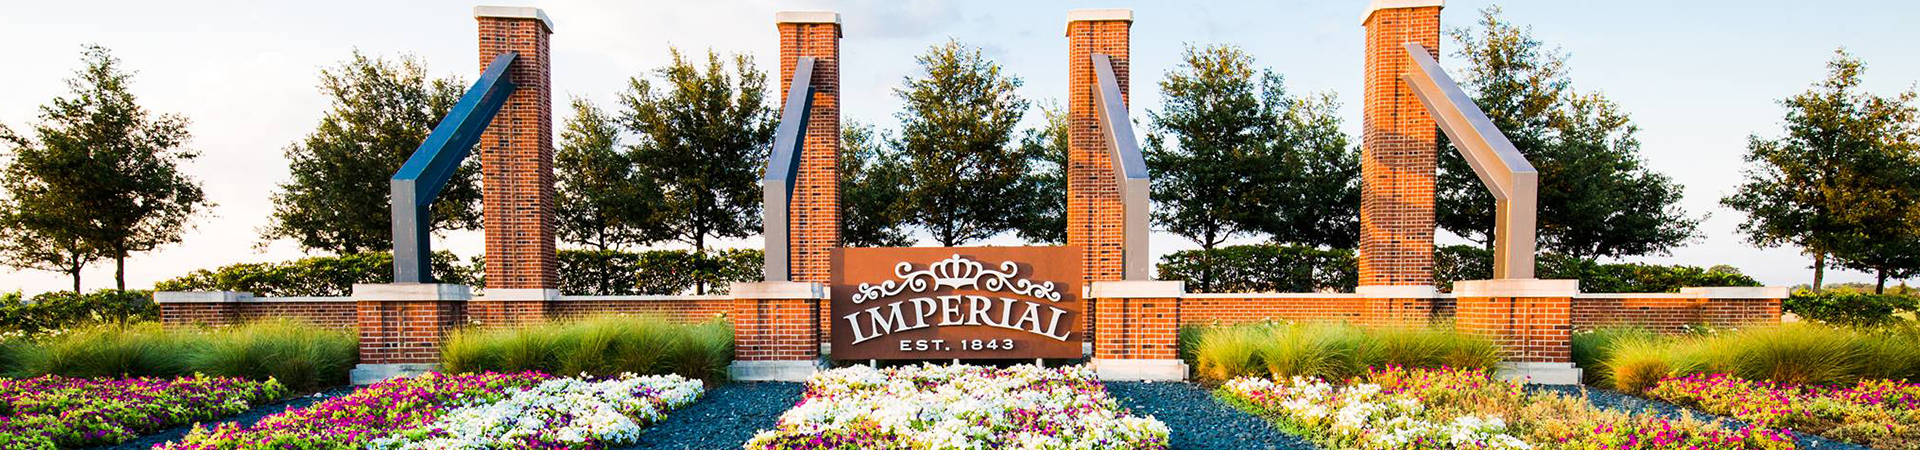 Imperial in Sugar Land, TX | Johnson Development Corp